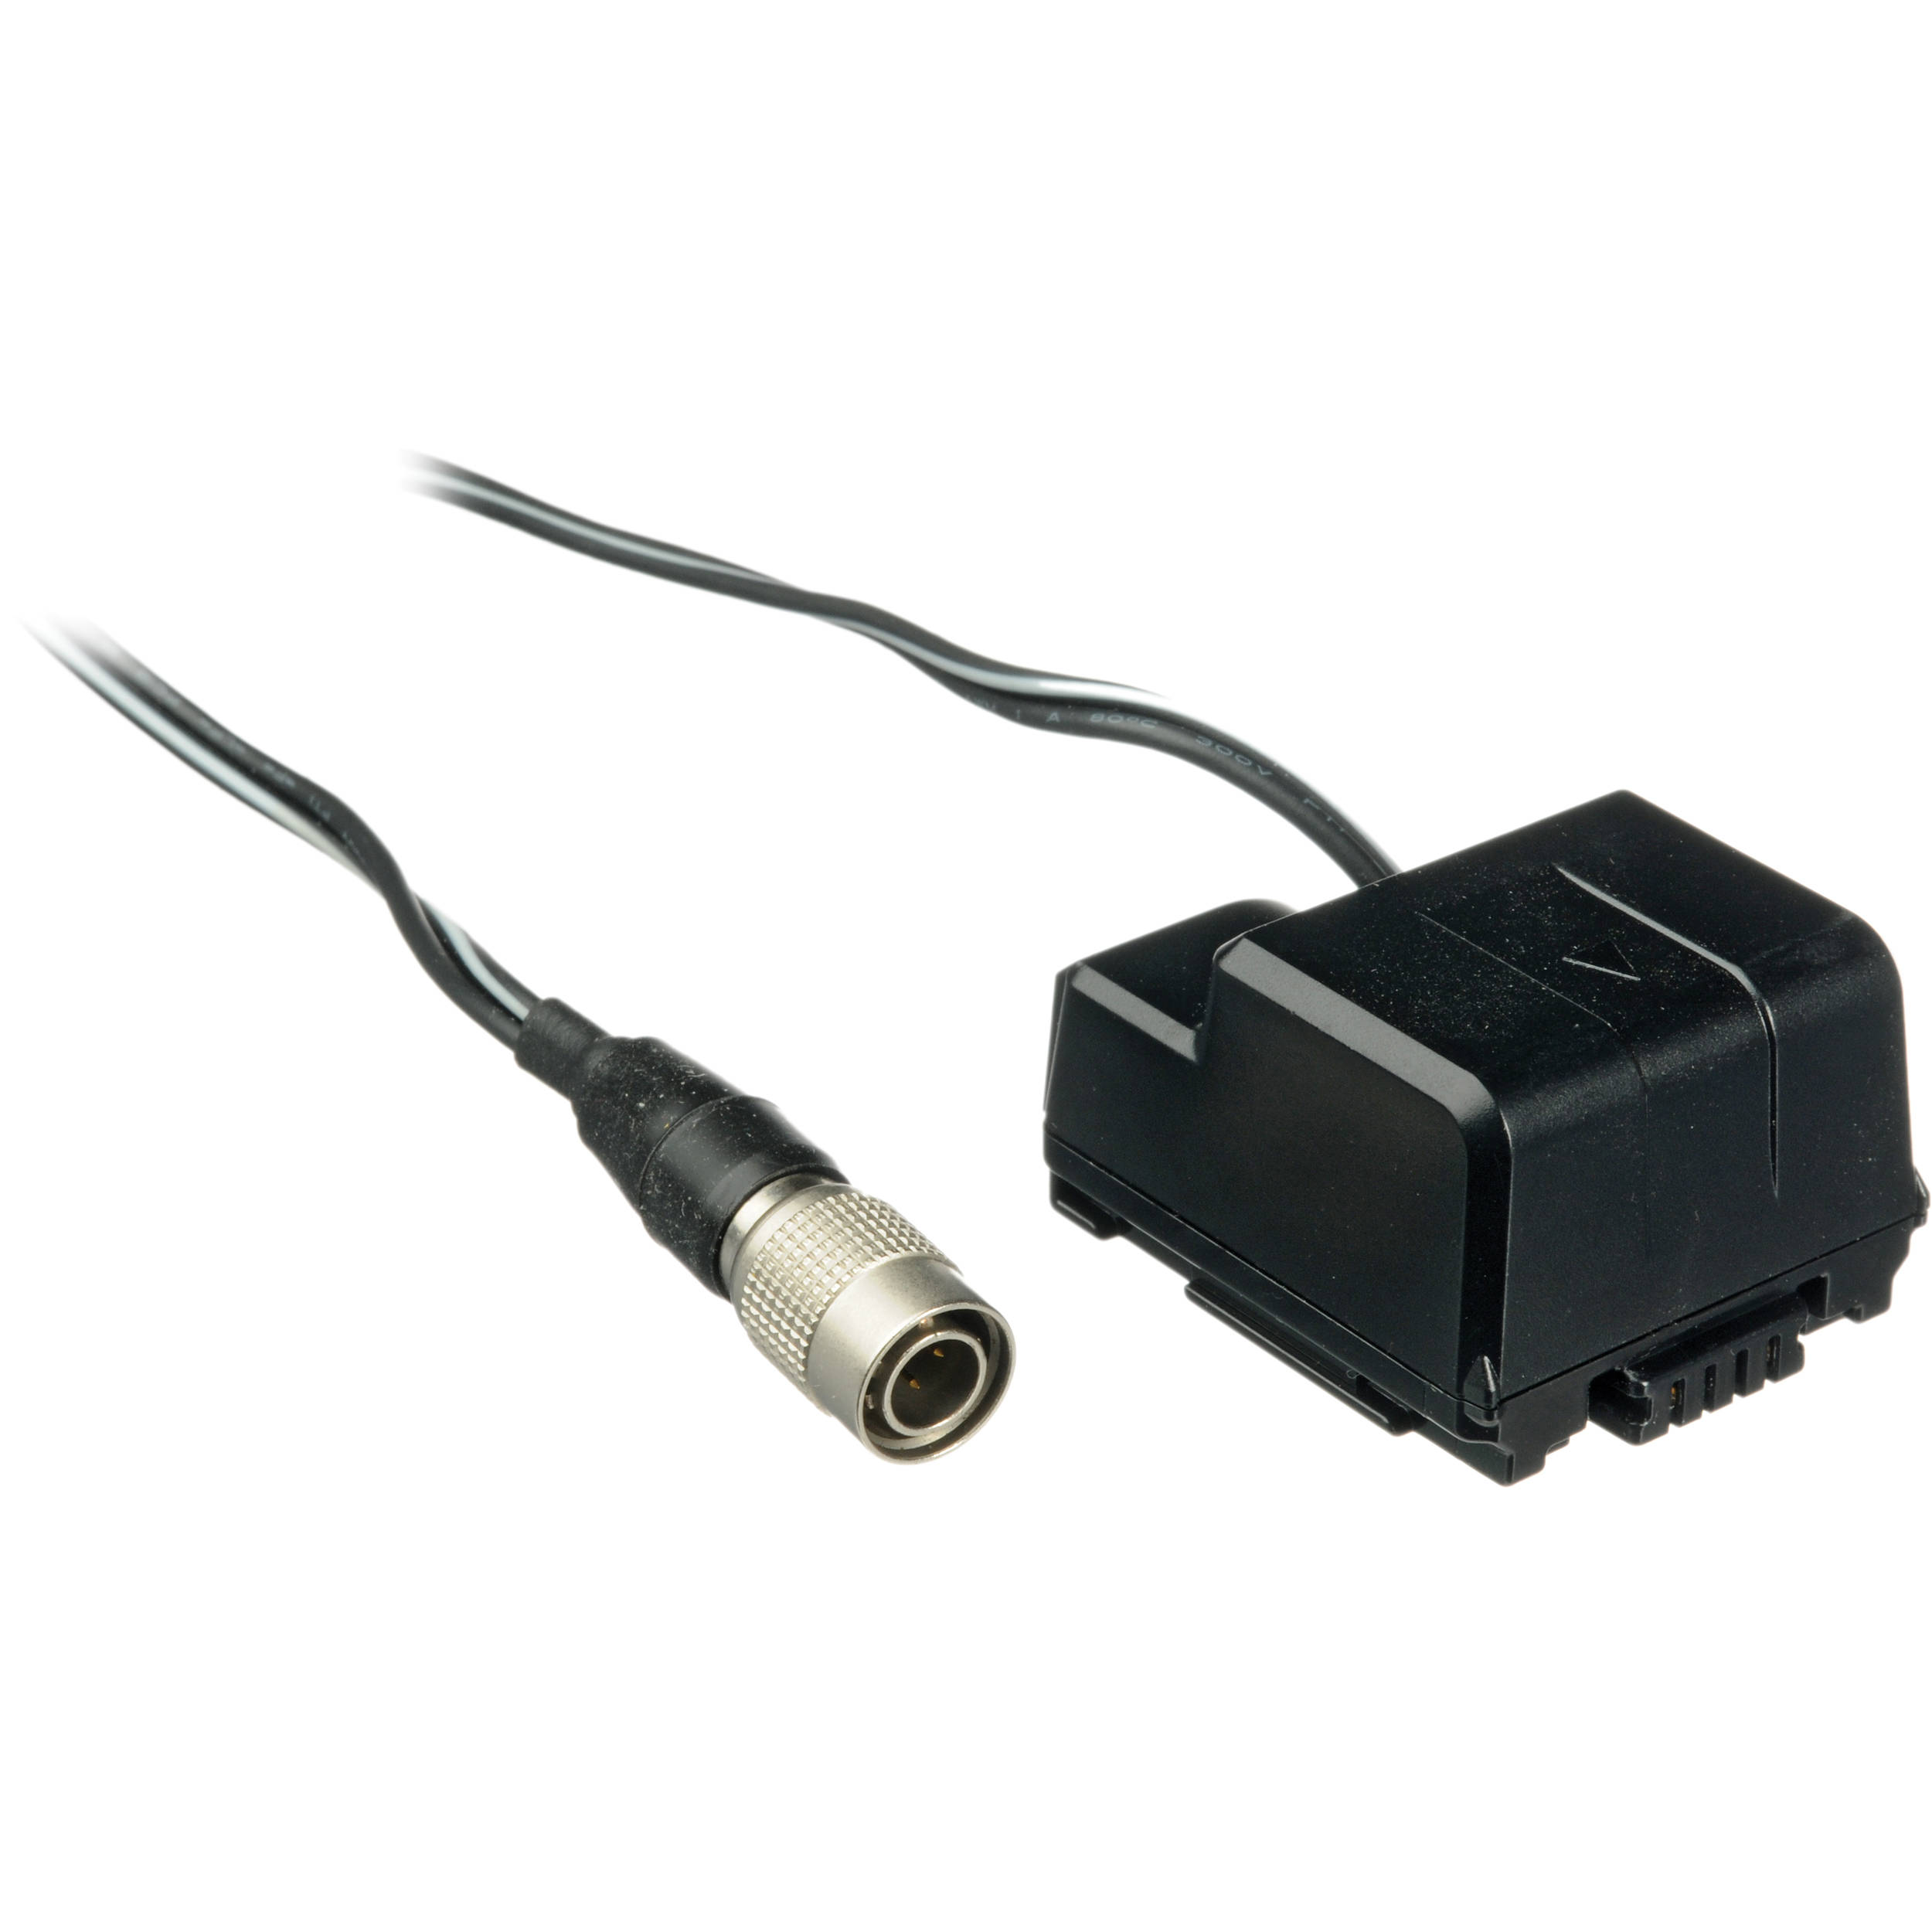 Bebob Factory GmbH 12 V COCO Adapter Cable COCO-AK-AF B&H Photo